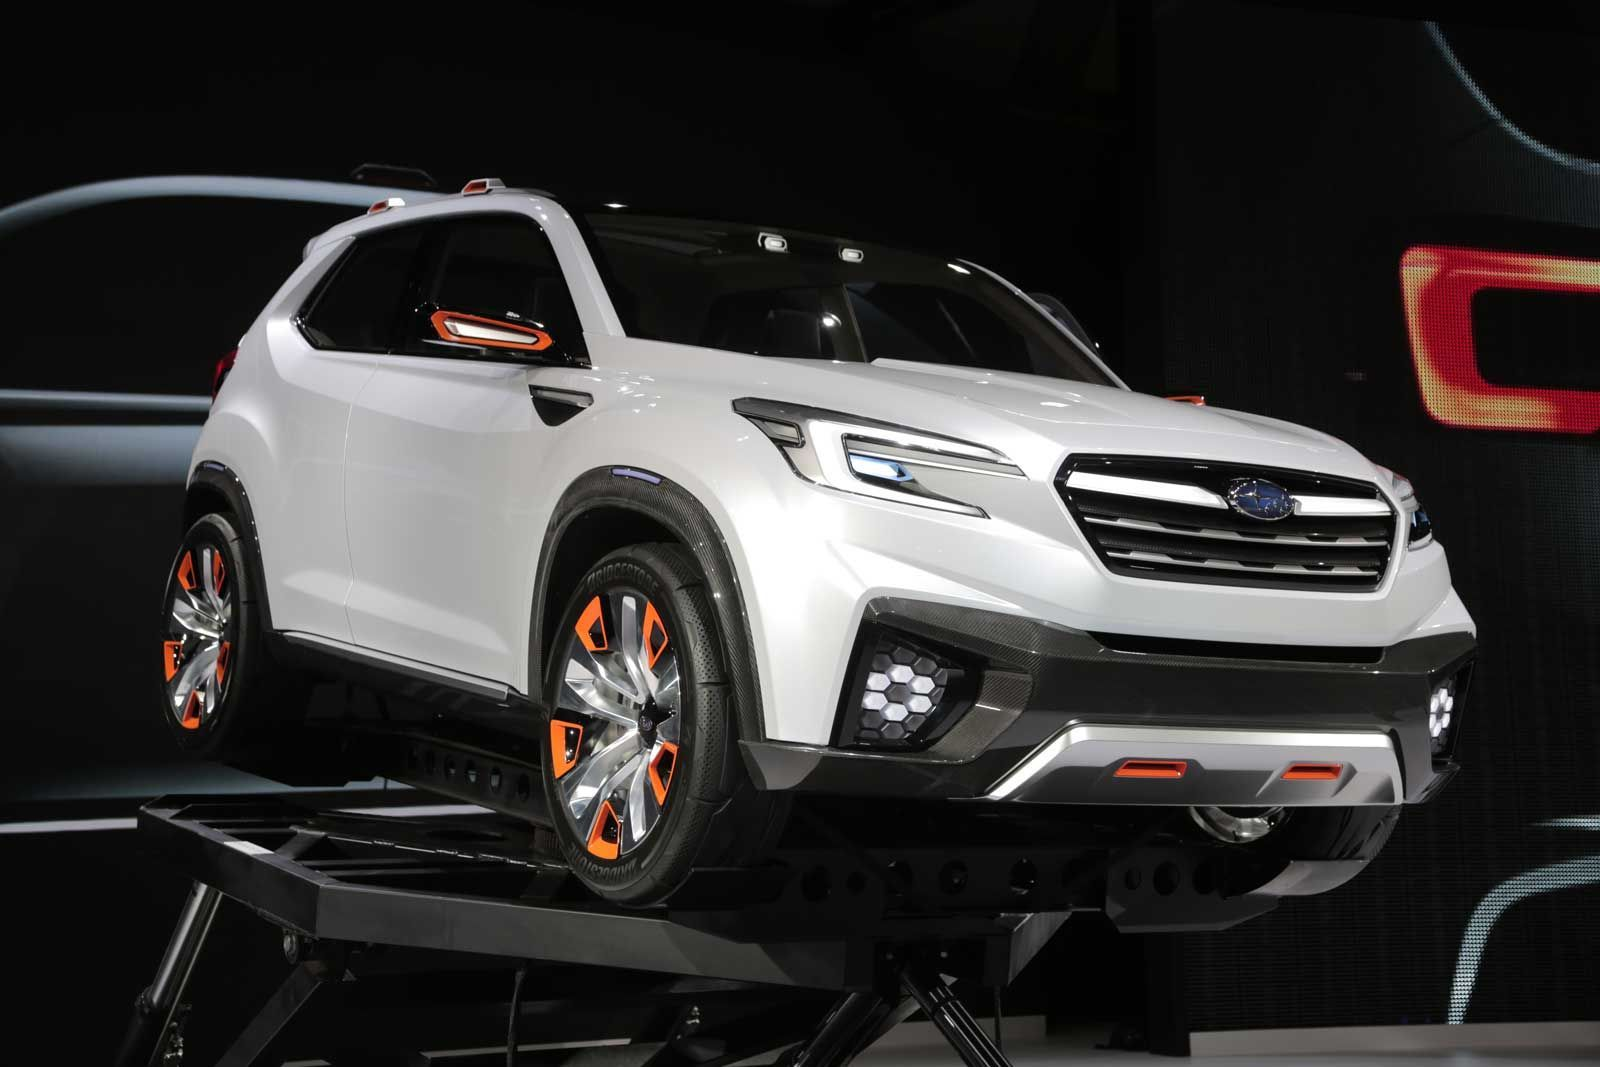 2020 Subaru Forester Sport Redesign And Concept Subaru Subaru Forester Upcoming Cars